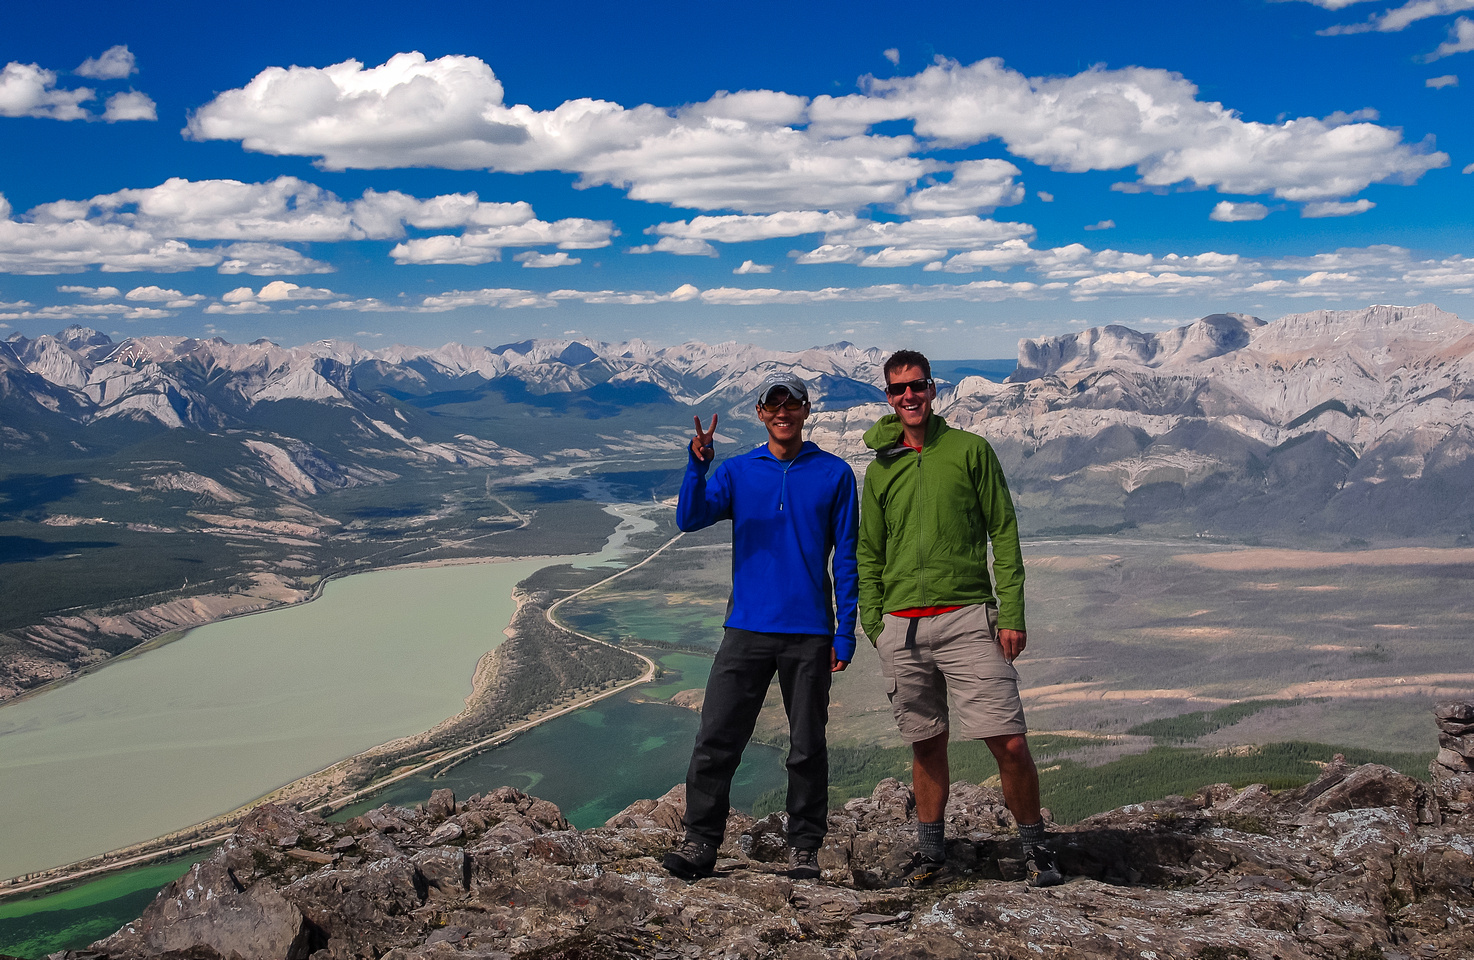 Vern and So on the summit of Cinquefoil Mountain.